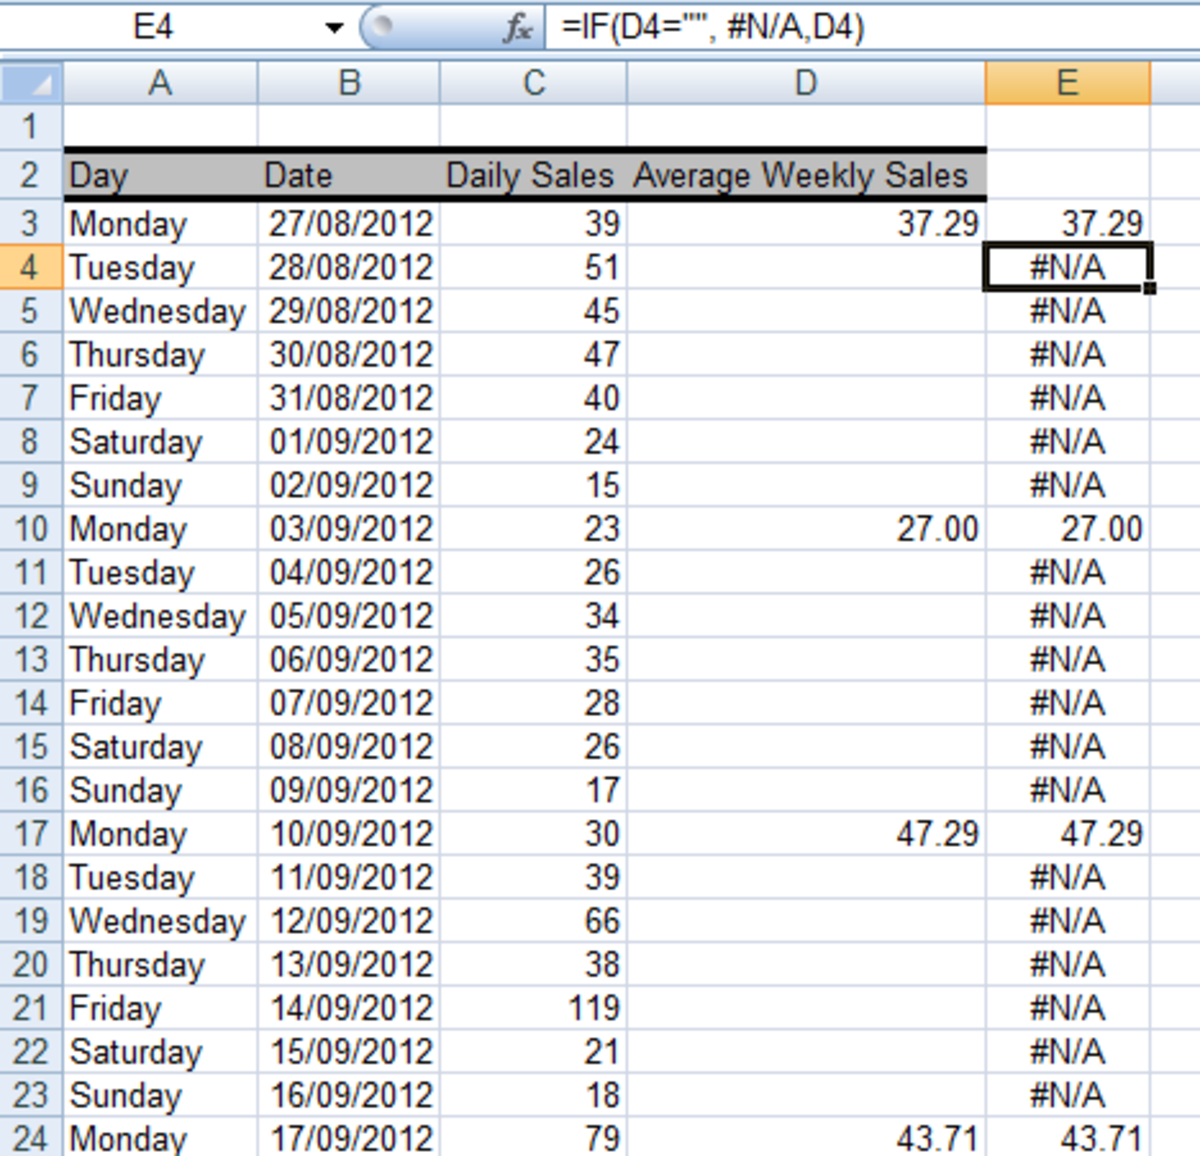 Ediblewildsus  Sweet How To Get Excel  And  To Ignore Empty Cells In A Chart Or  With Lovely Using The If Function In A Formula To Convert Empty Cells To Na With Archaic Excel Assignment Also Sales Receipt Template Excel In Addition Icd  Excel And Excel Set Password As Well As Excel Center Concerts Additionally Excel Navigation From Turbofuturecom With Ediblewildsus  Lovely How To Get Excel  And  To Ignore Empty Cells In A Chart Or  With Archaic Using The If Function In A Formula To Convert Empty Cells To Na And Sweet Excel Assignment Also Sales Receipt Template Excel In Addition Icd  Excel From Turbofuturecom